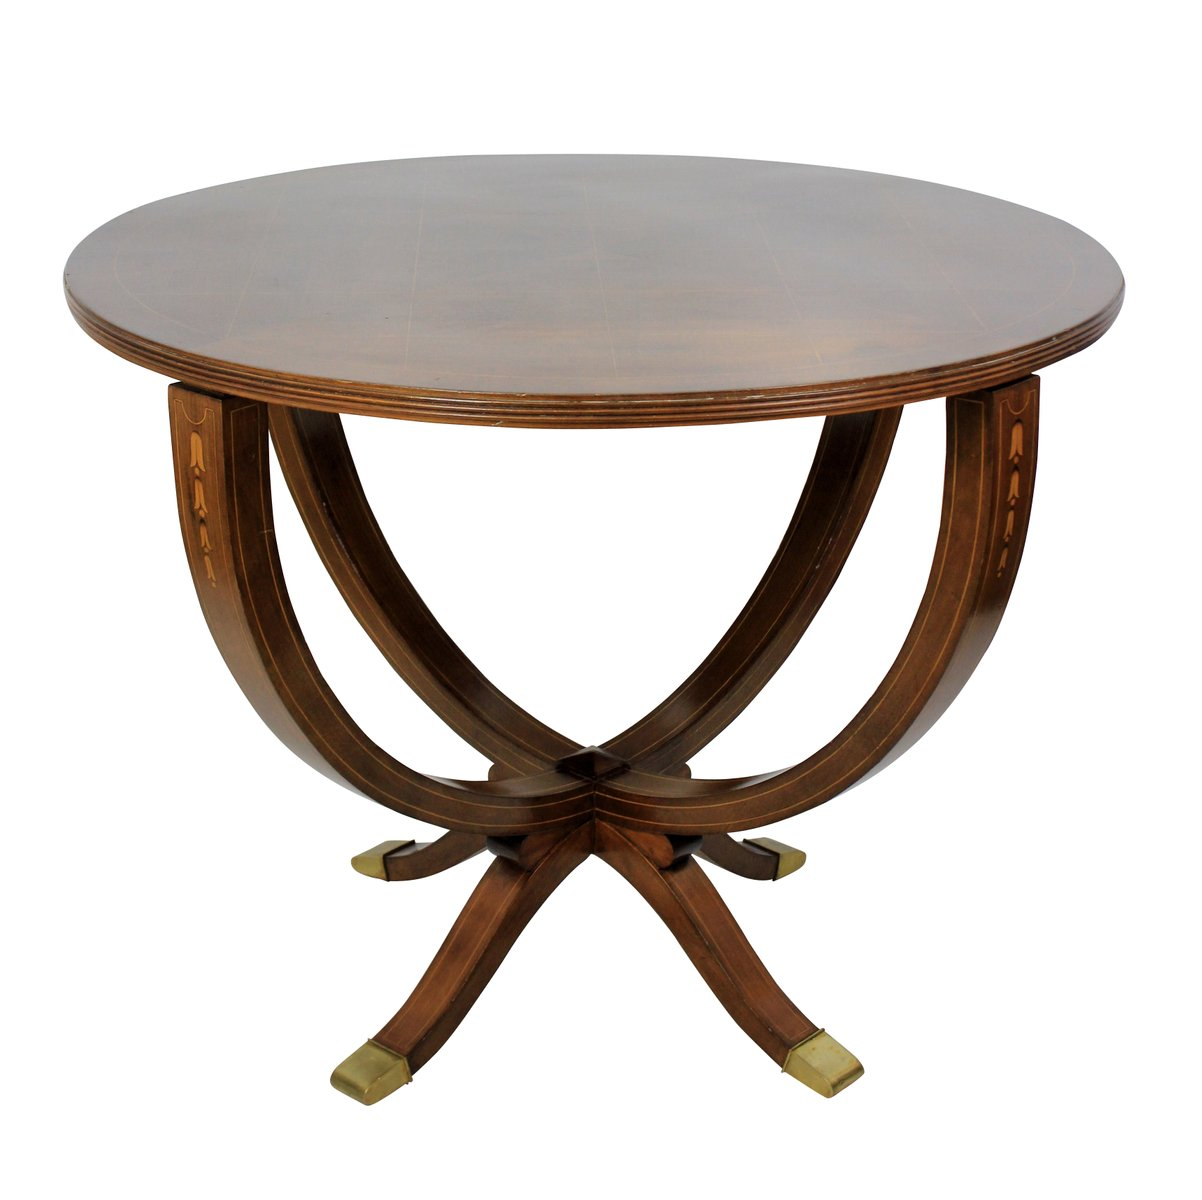 Center Table Wood : Italian Cedar Wood Center Table for sale at Pamono